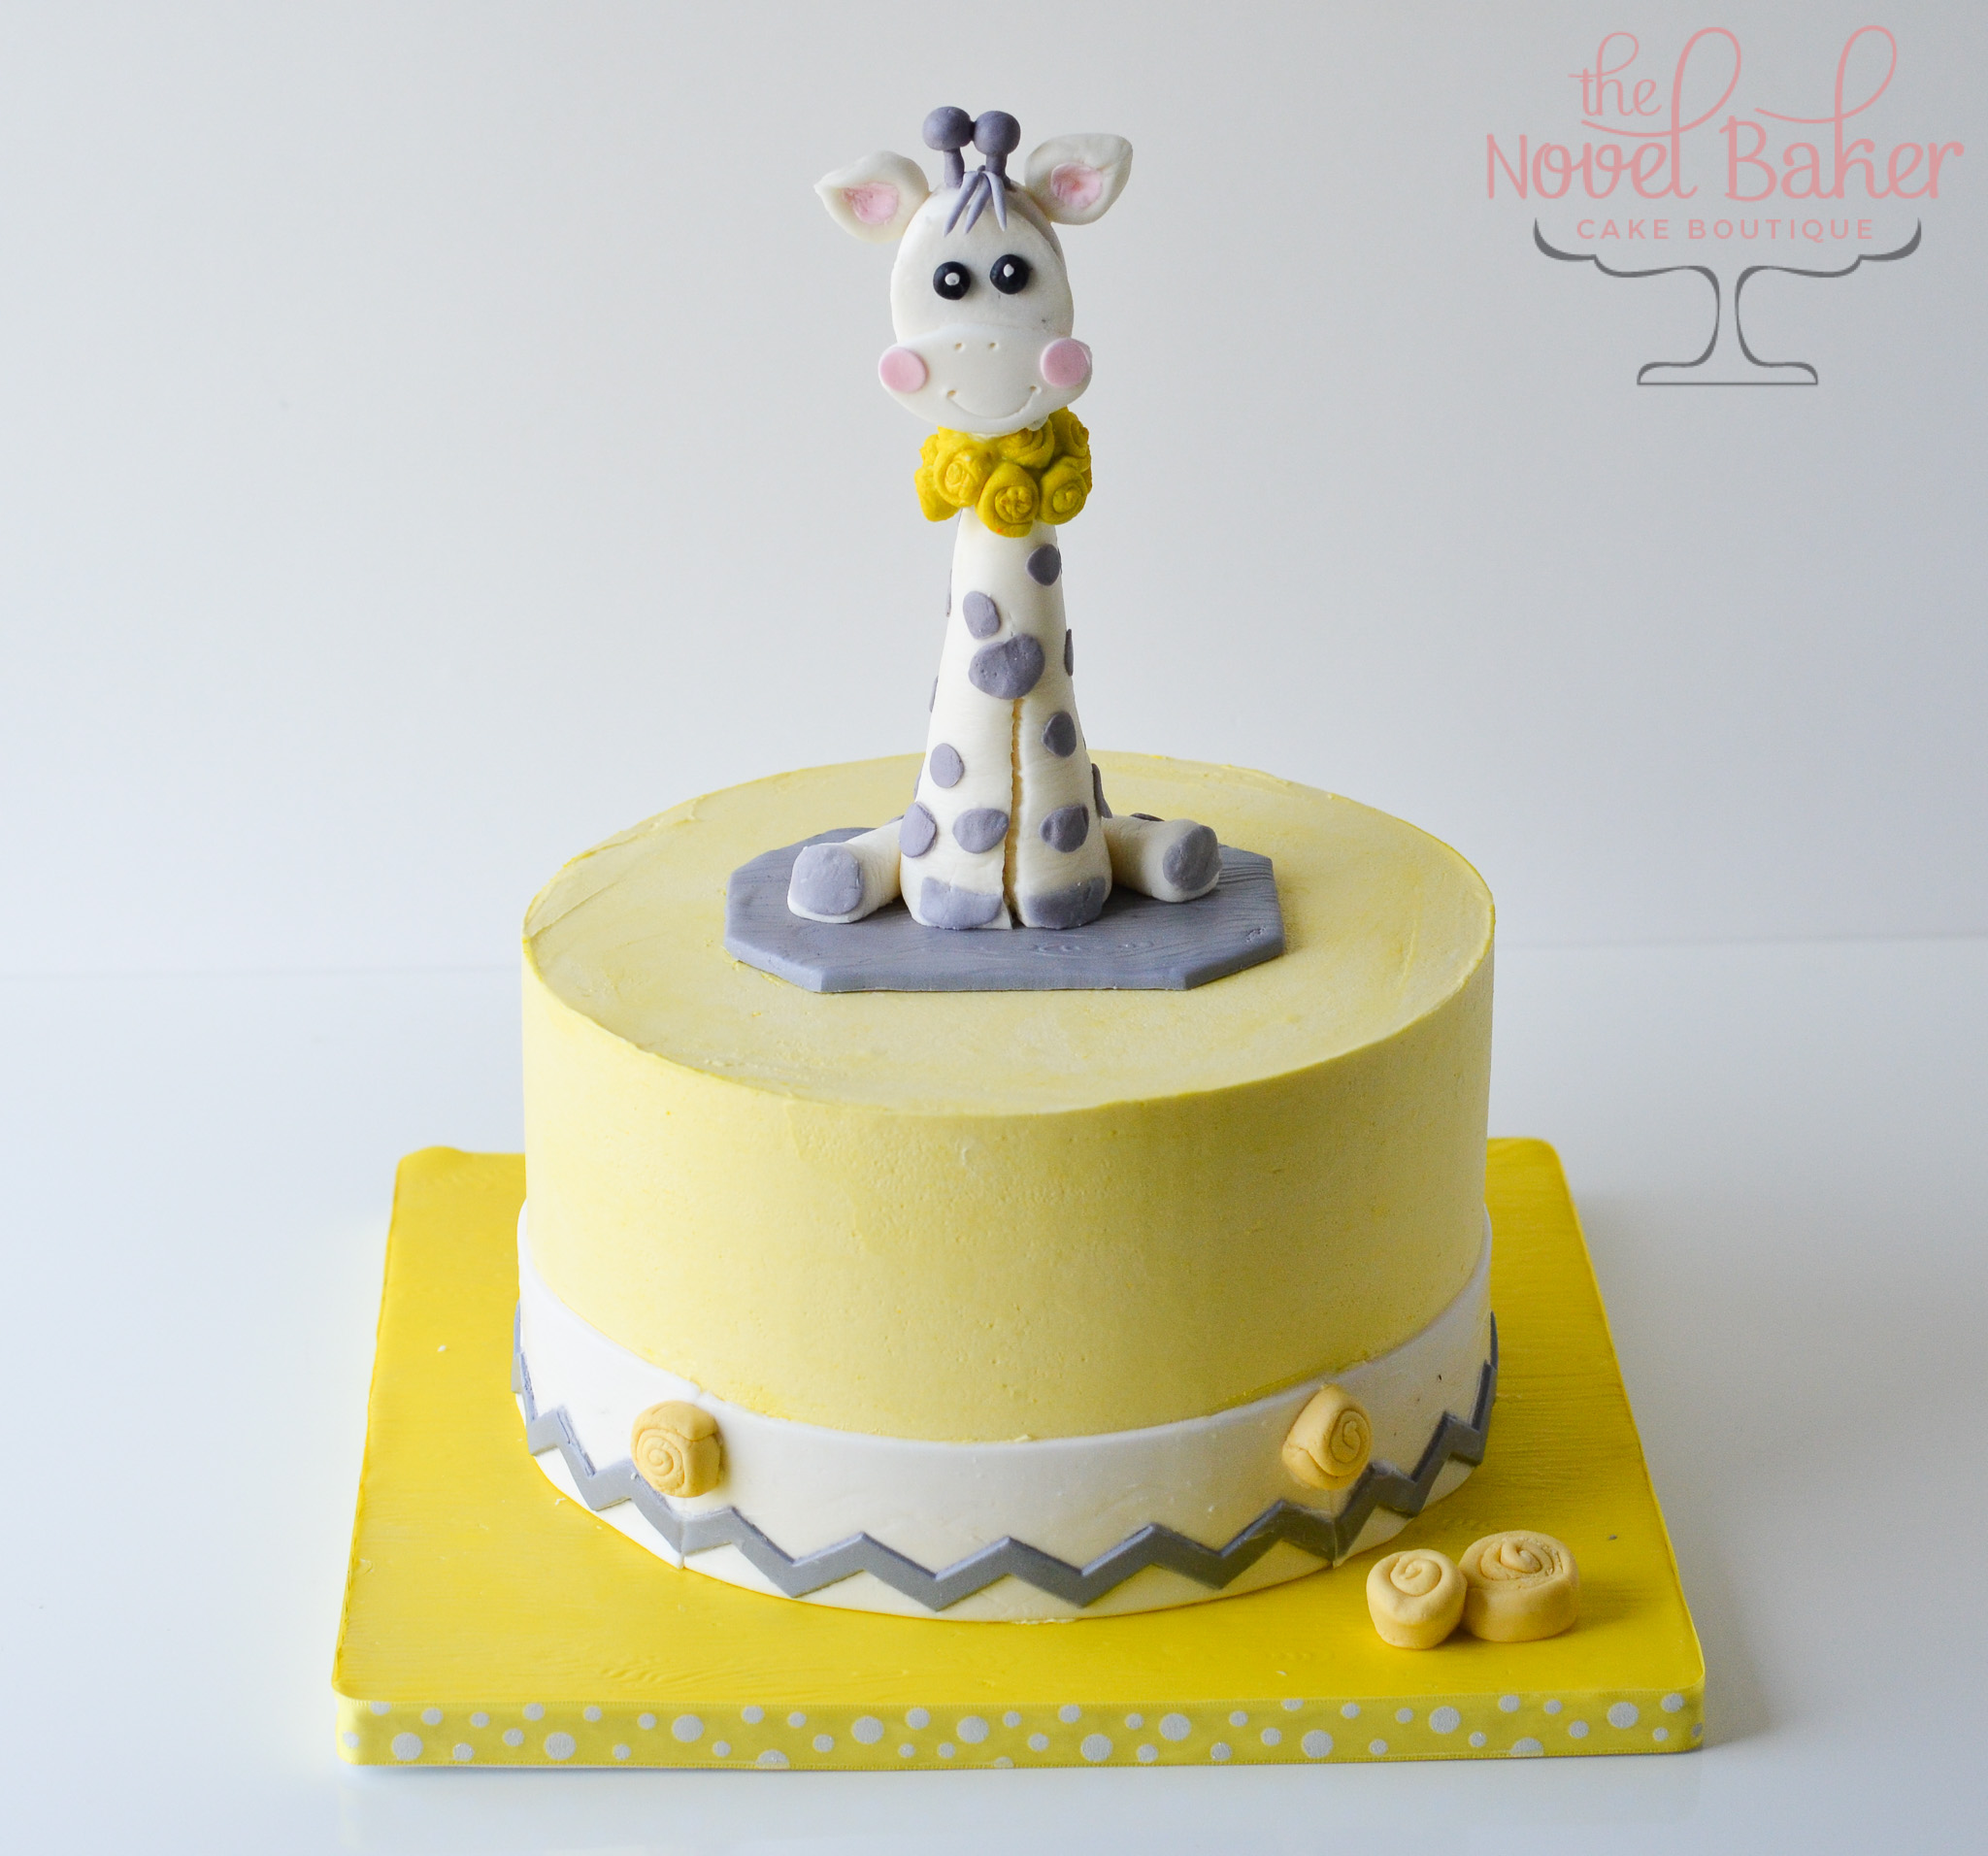 White and gray 3d baby giraffe on a yellow round cake with white band and gray chevron